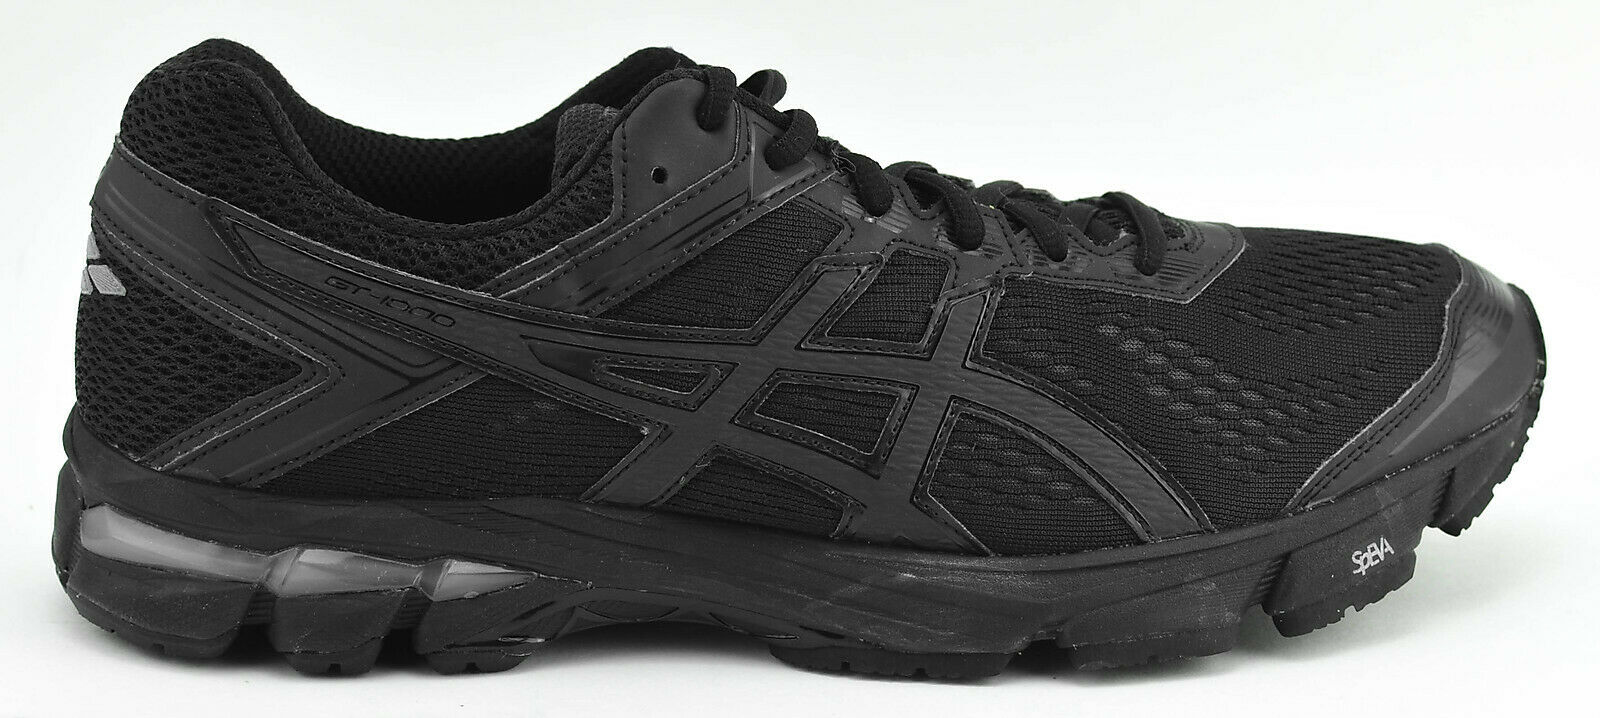 WOMENS ASICS GT 1000 4 RUNNING SHOES SIZE 13 D WIDE BLACK OUT T5A8N